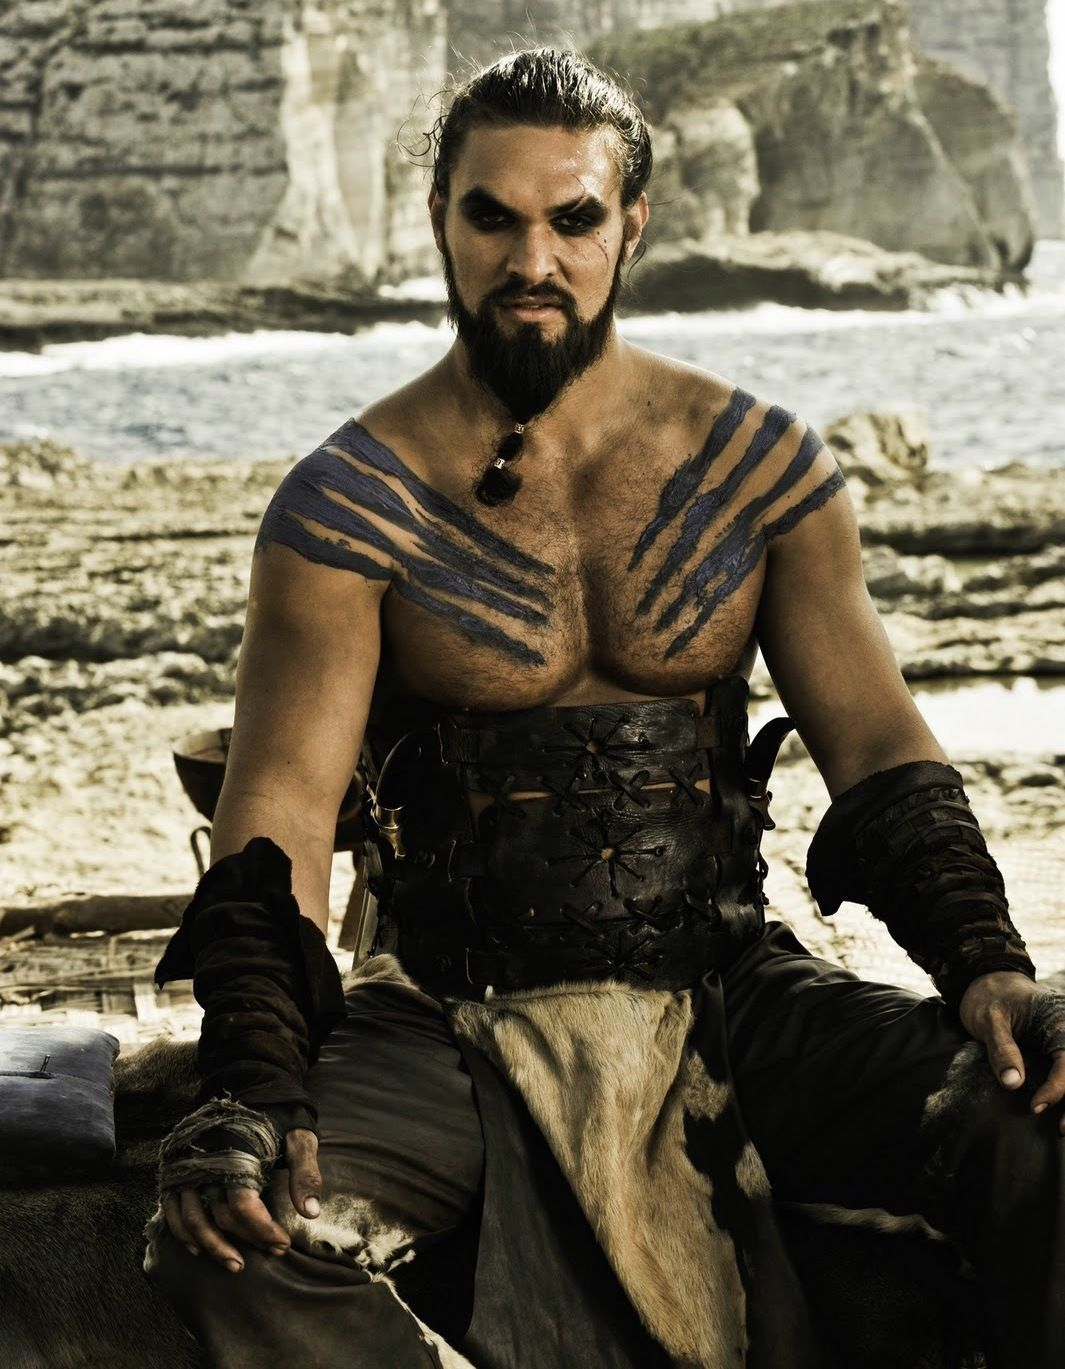 Jason Momoa Says No One Knew He Spoke English After Playing Khal Drogo on Game of Thrones